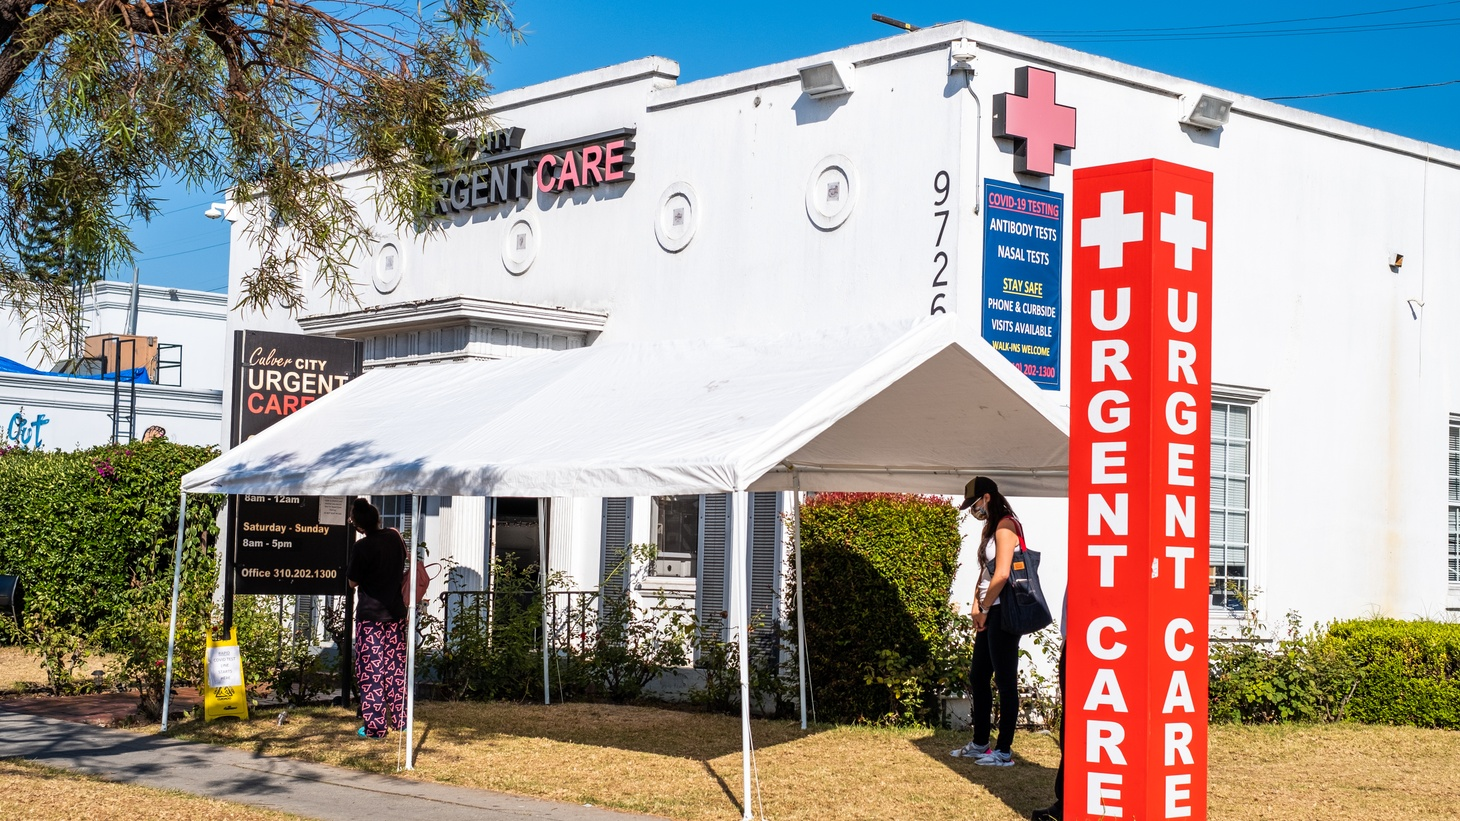 Culver City Urgent Care provides nasal tests and antibody tests for COVID-19. Los Angeles remains the epicenter of the virus with more than 2,000 new cases on Tuesday, November 10, 2020.